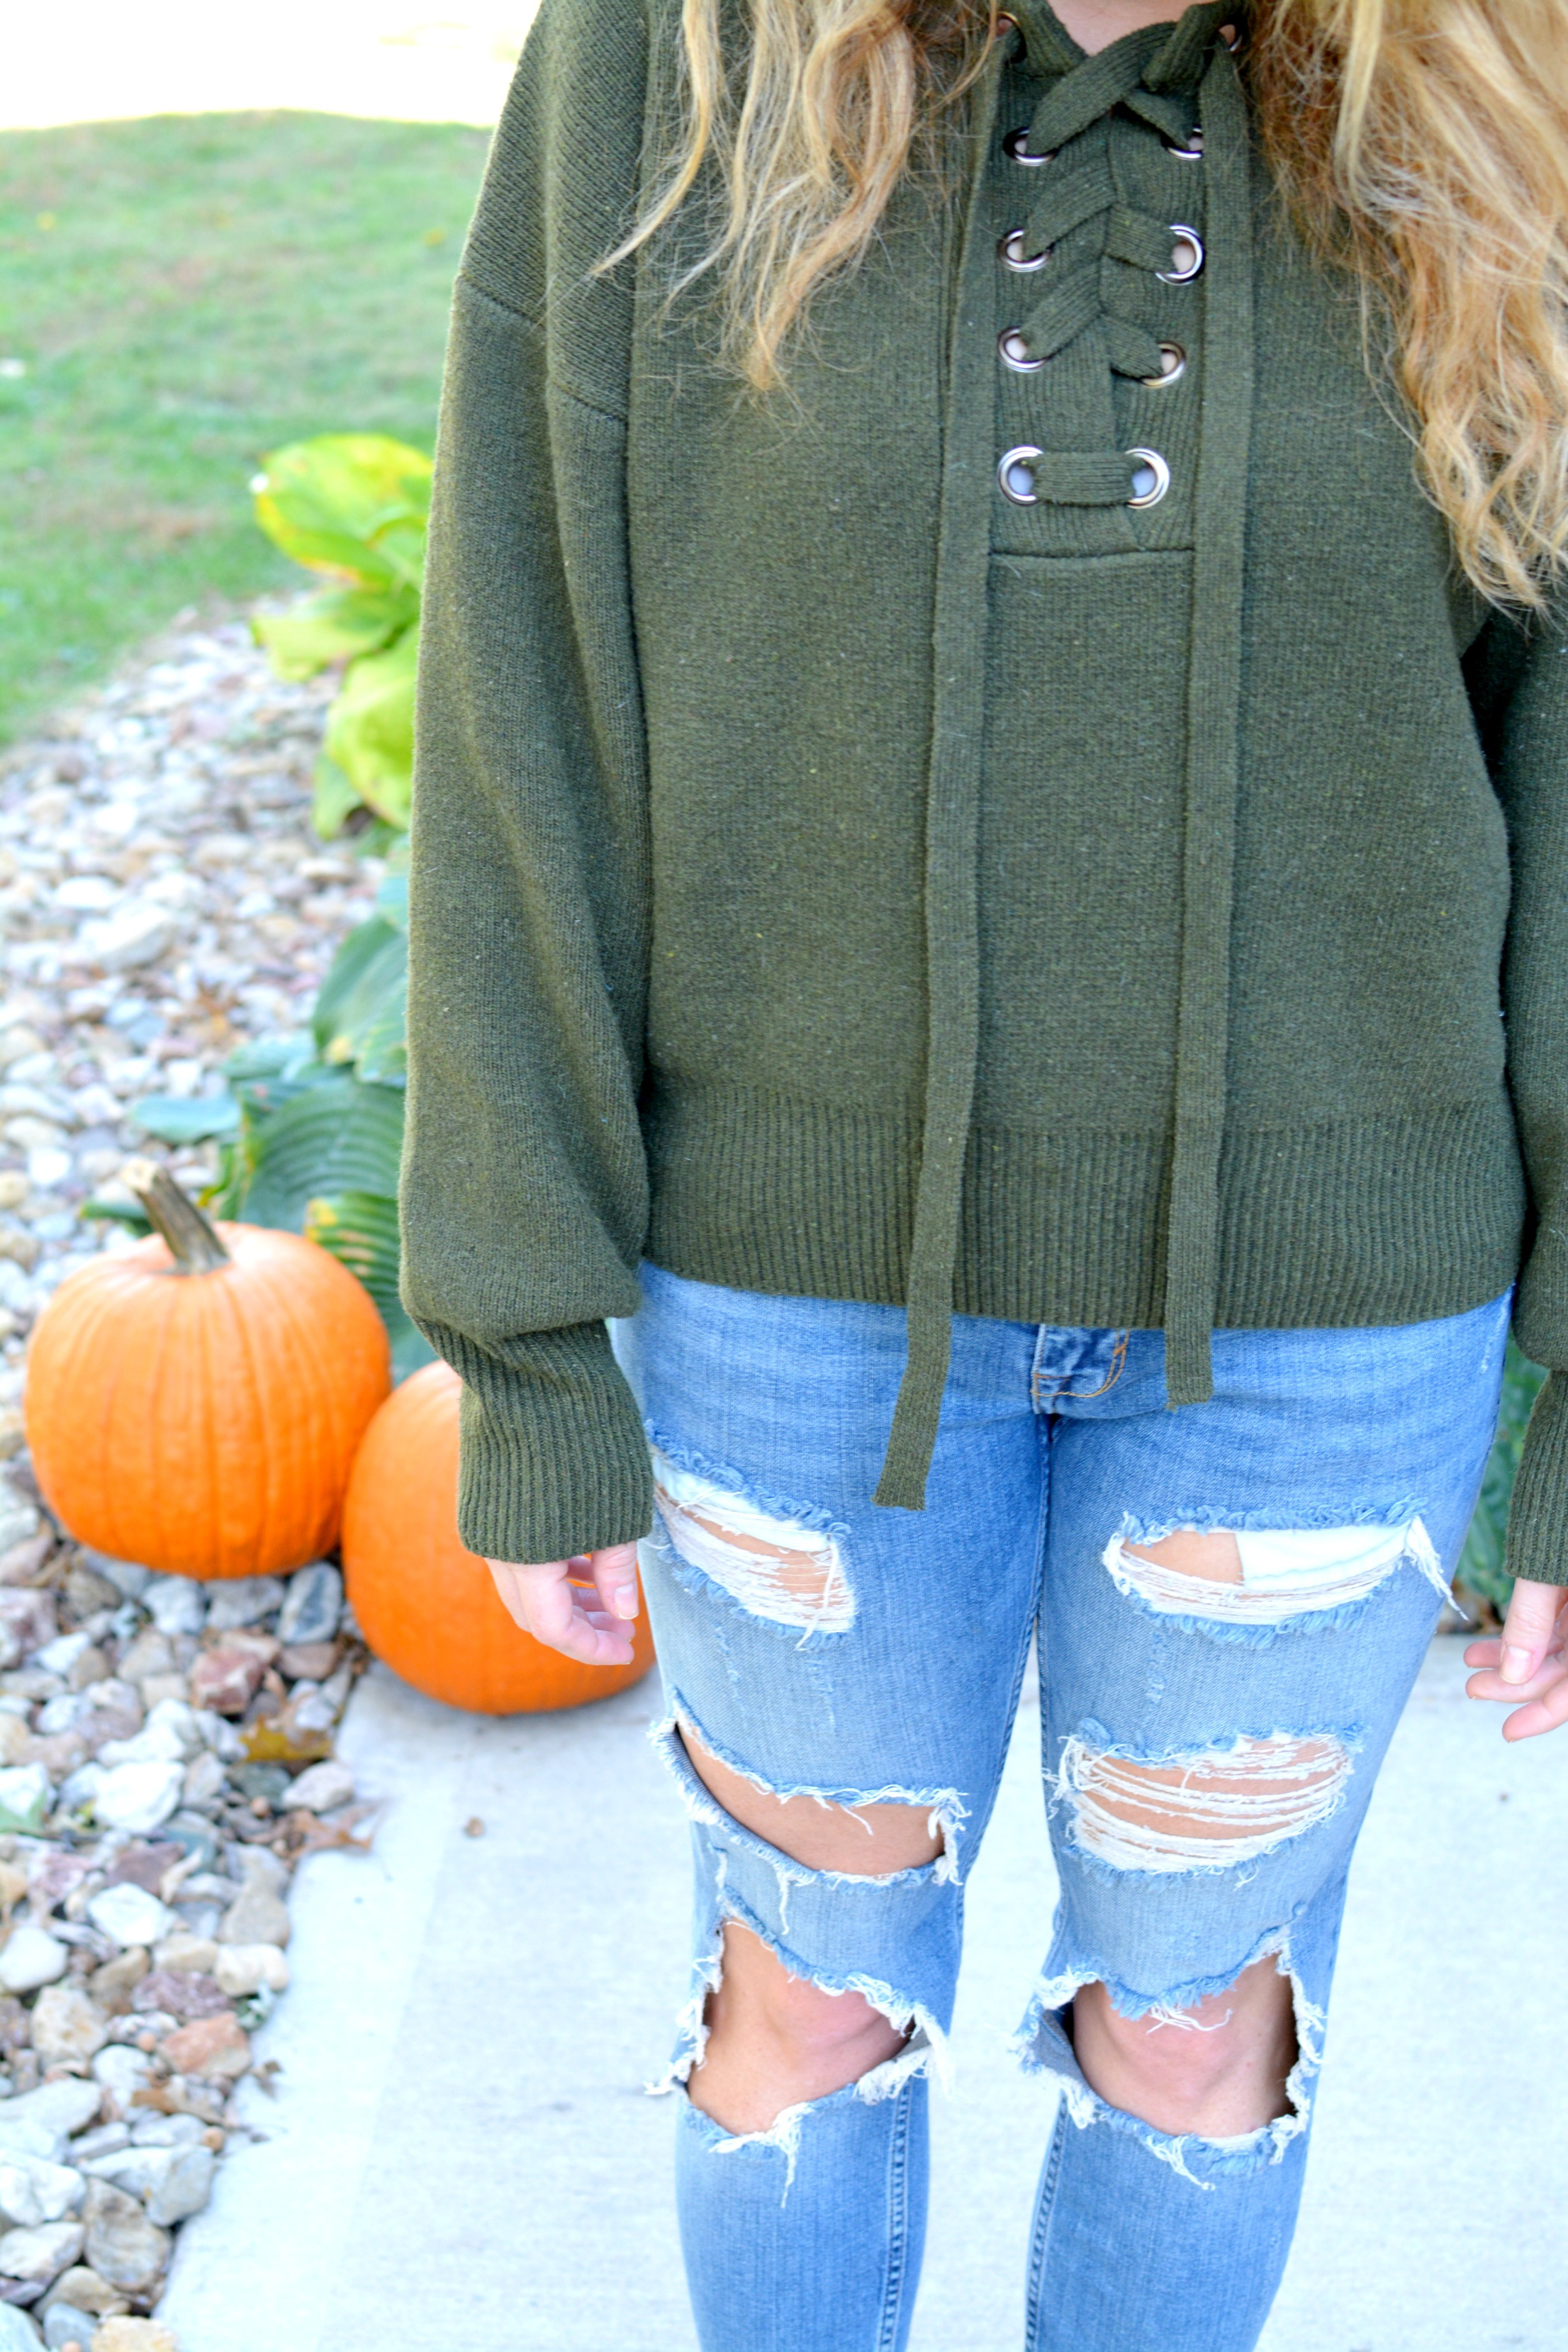 Ashley from LSR in a green lace-up sweater and destroyed denim